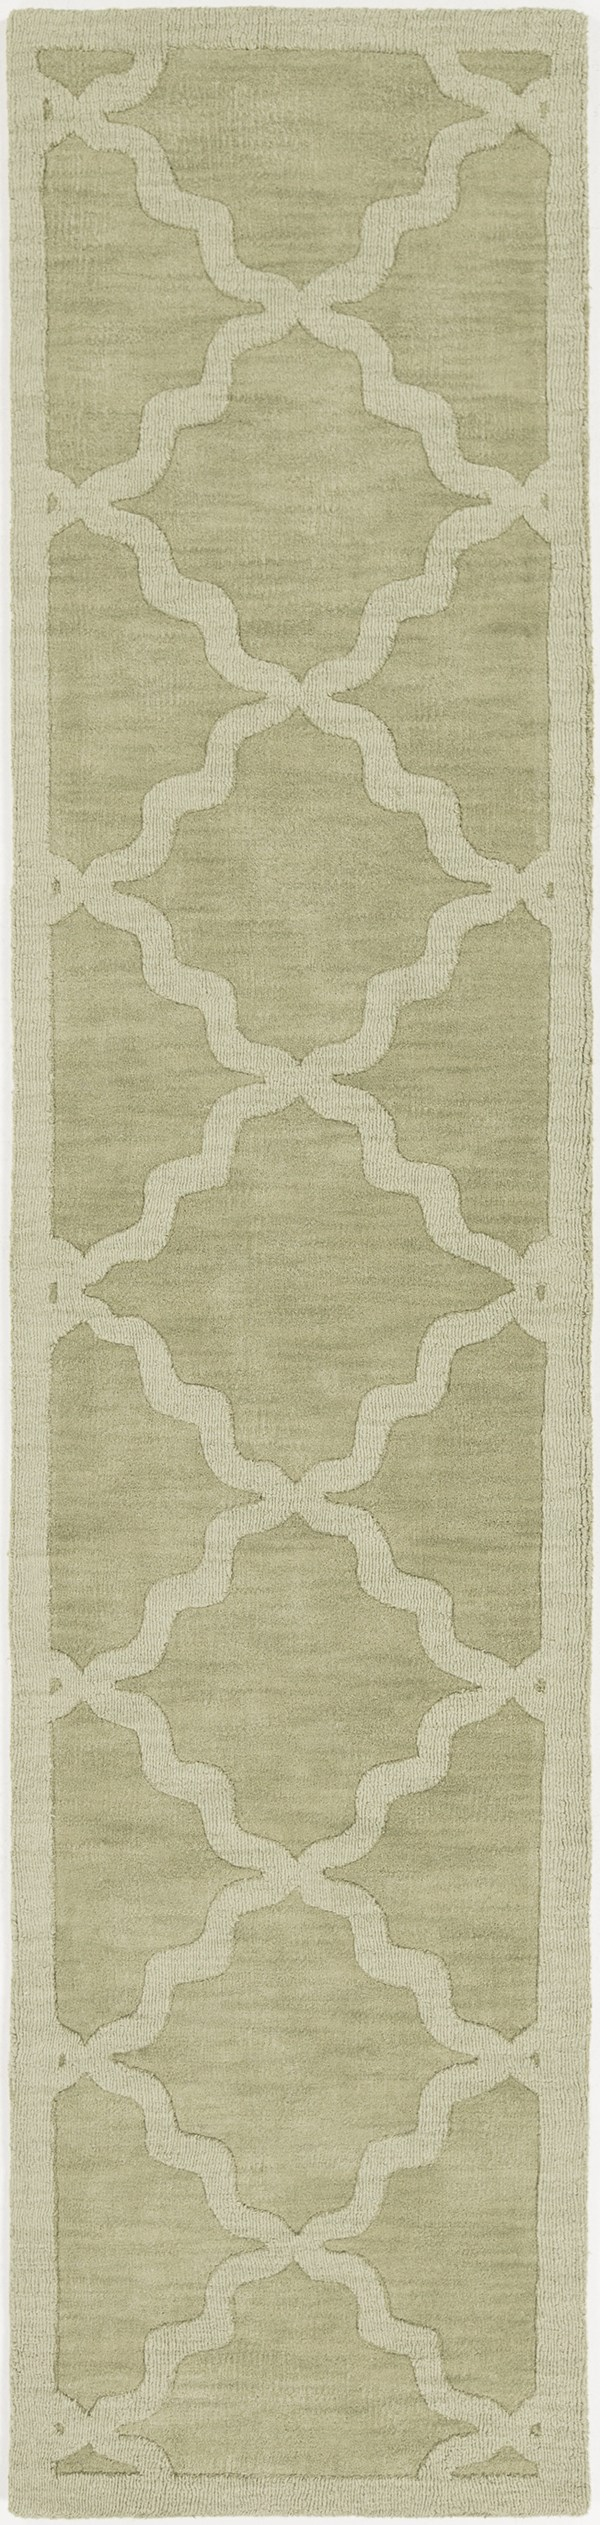 Sage (AWHP-4016) Textured Solid Area Rug